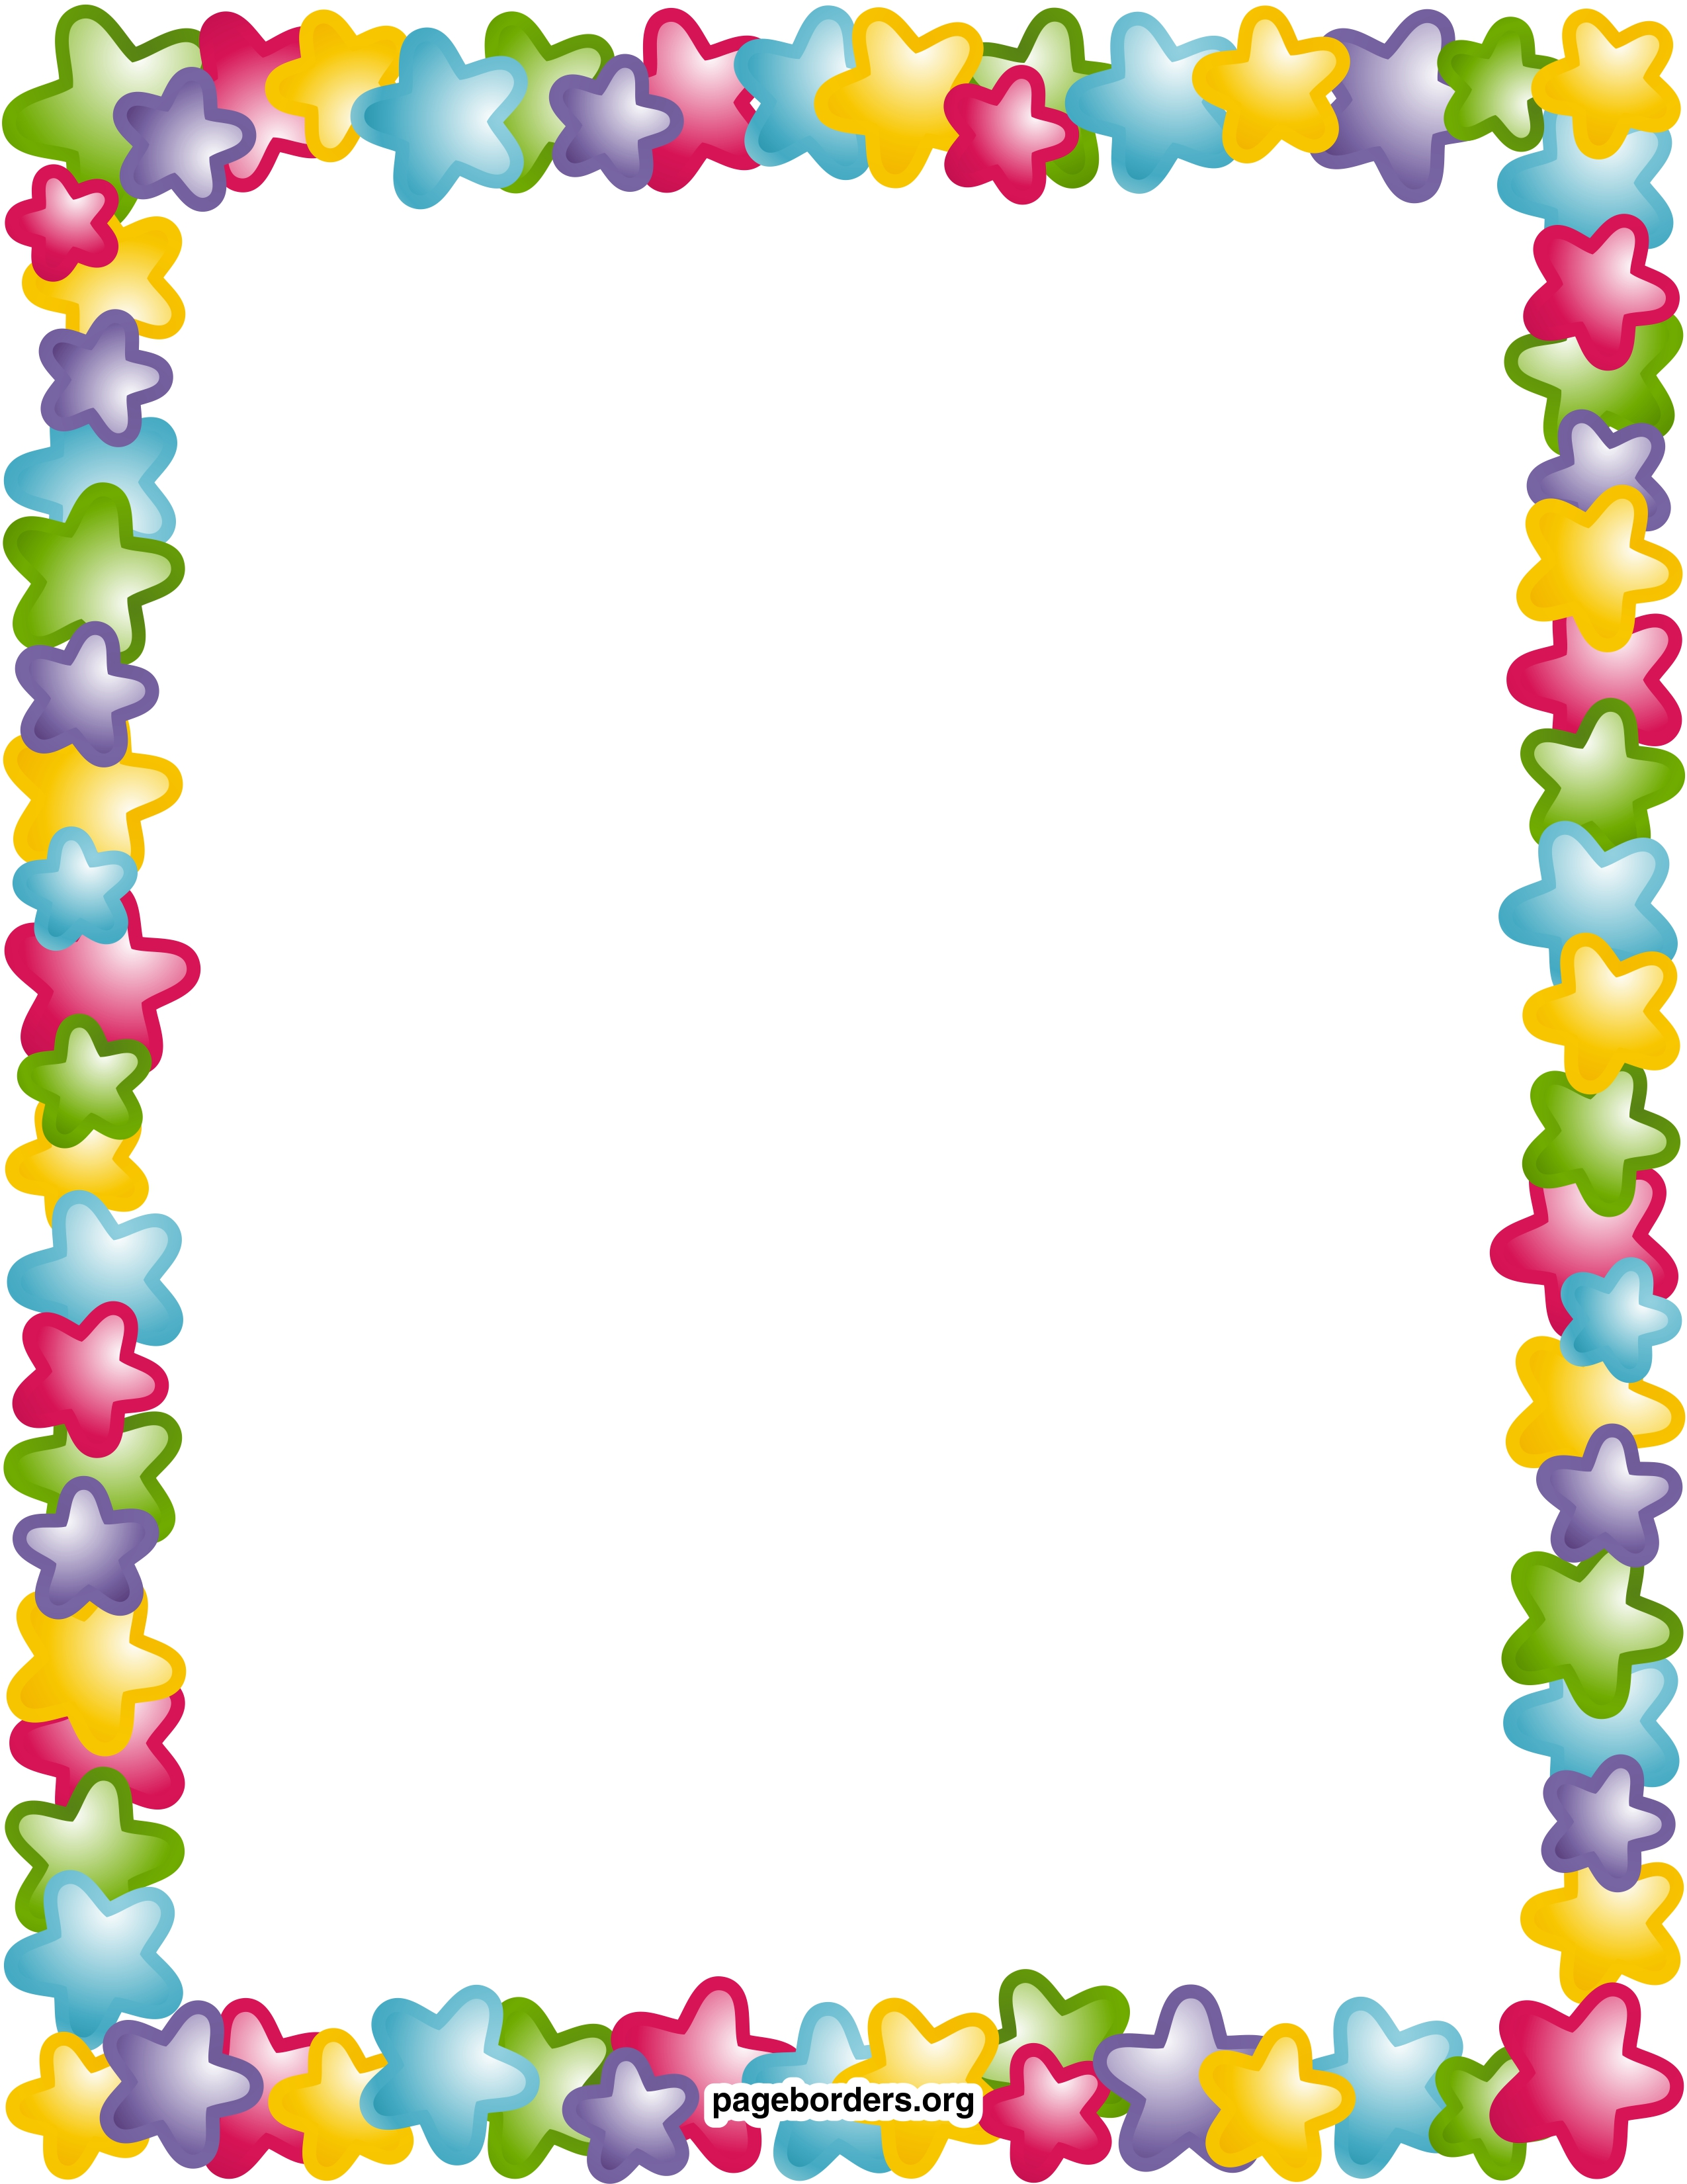 Frame clipart star Free Page Borders art Printable